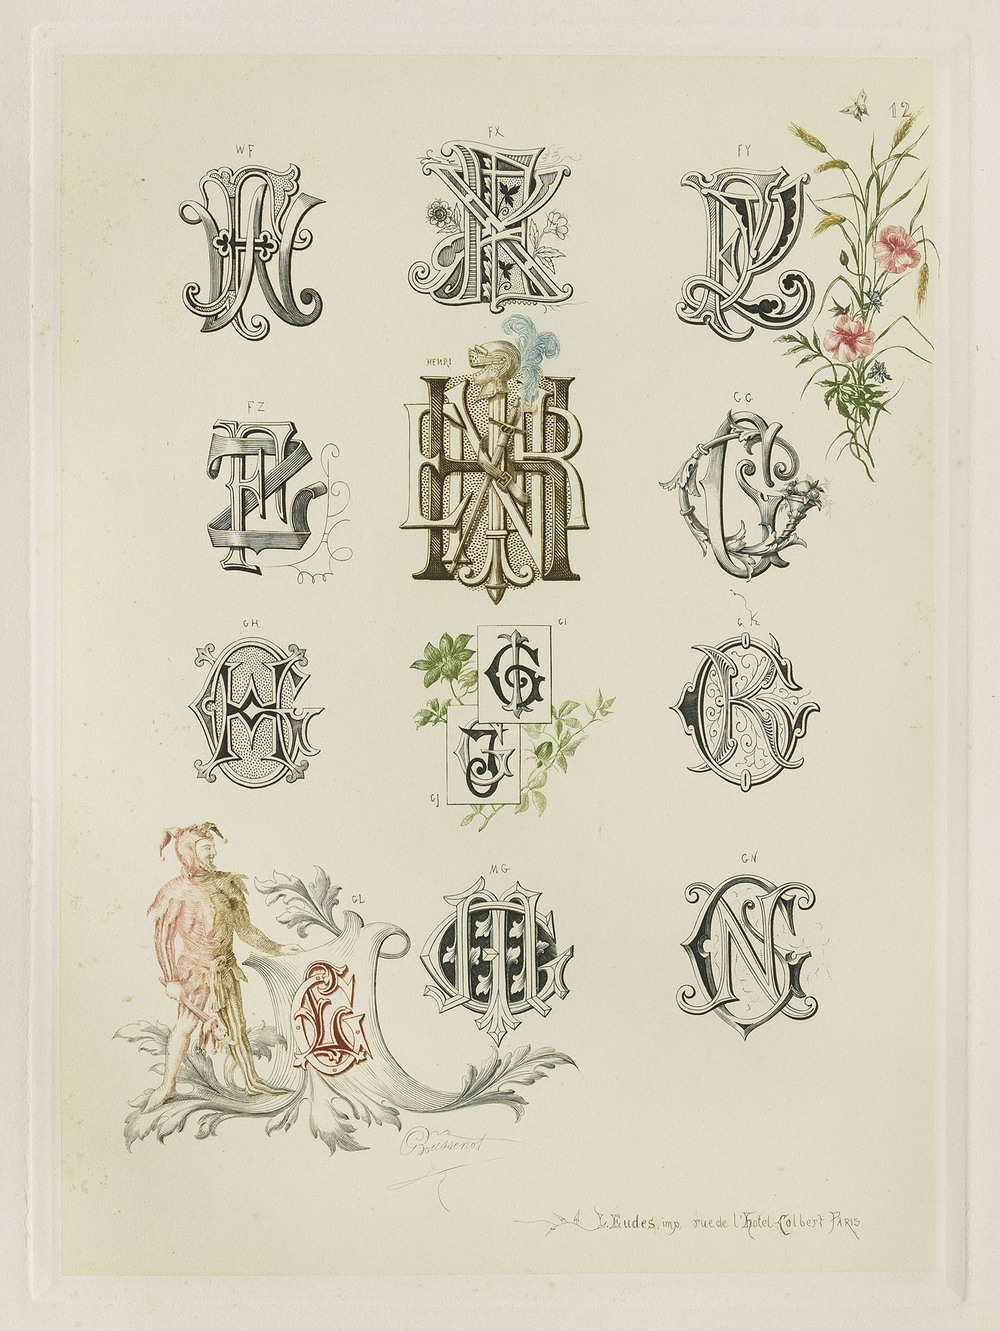 Detail of plate, Gustave Boussenot,  Chiffres & Monogrammes et Suite de Compositions Decoratives de Styles et de Fantaisies , Paris, circa 1880, 22 x 30 cm